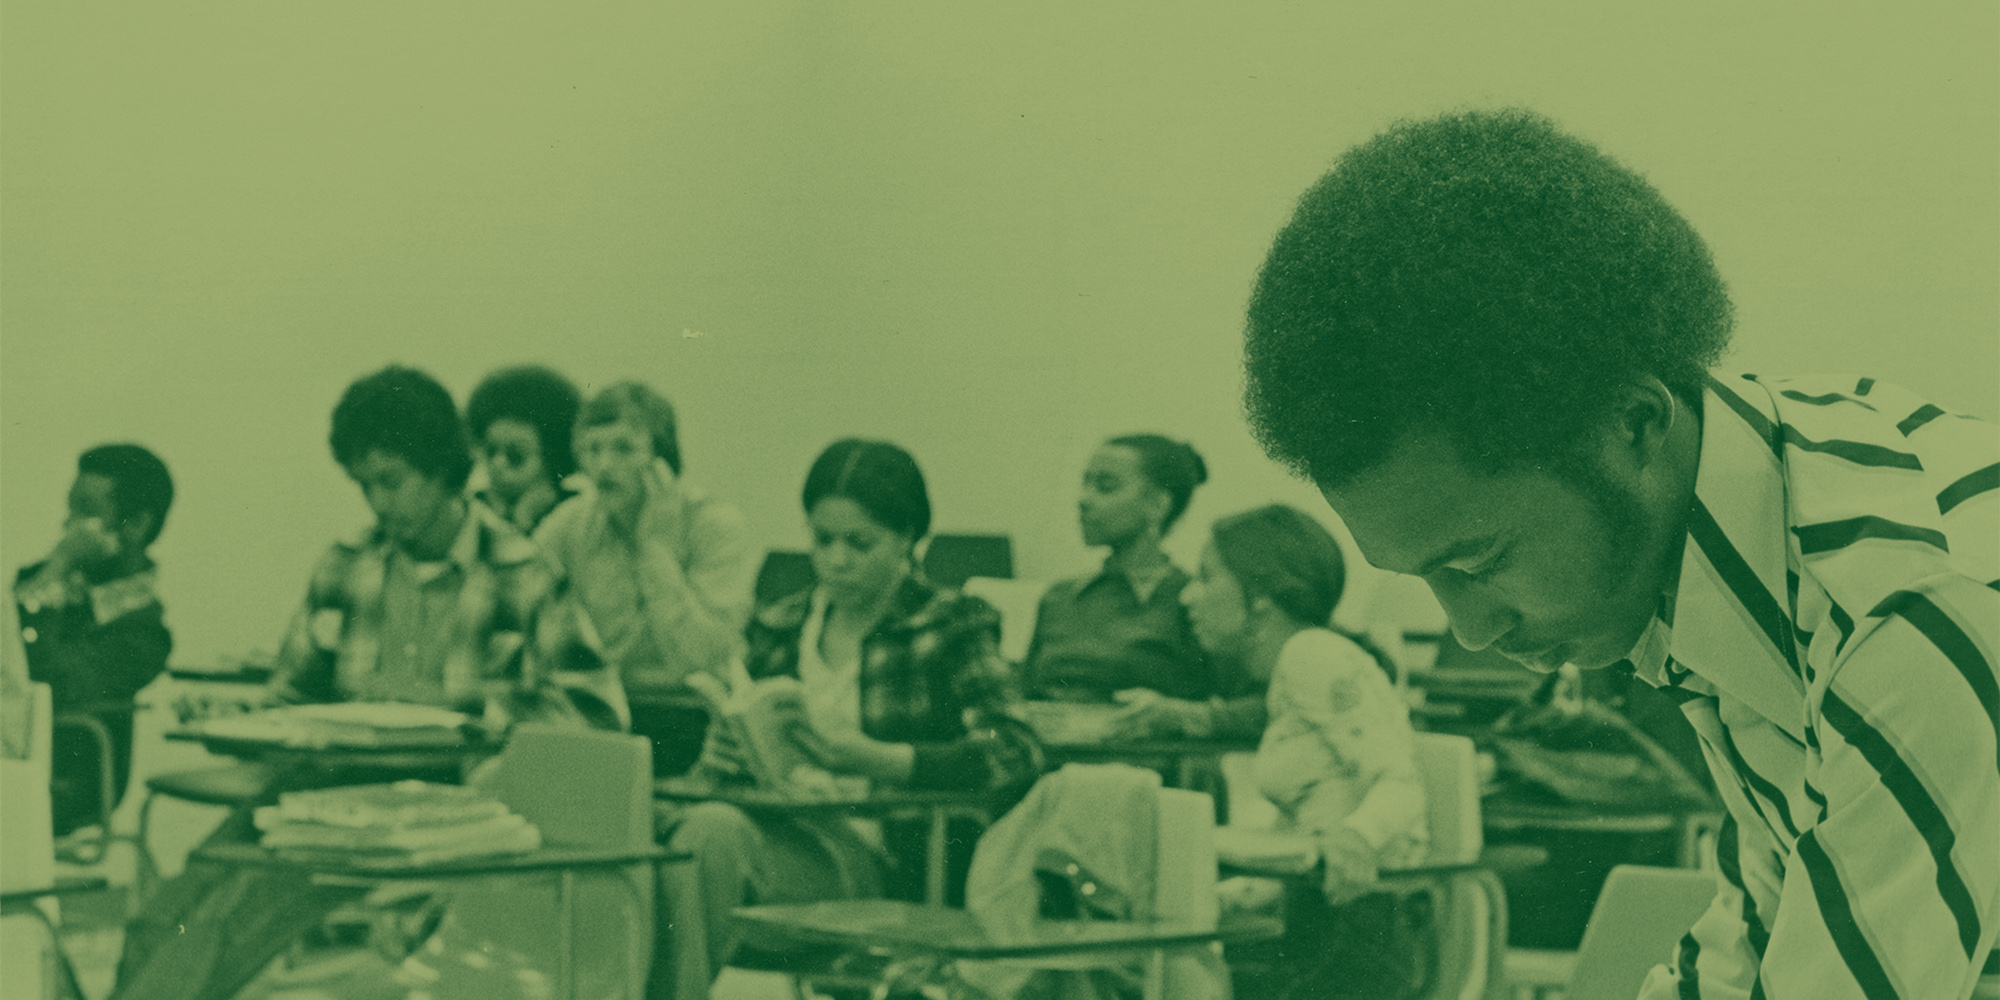 Scholarship, Research, Activism: A brief history of UNC Charlotte's Africana Studies Department